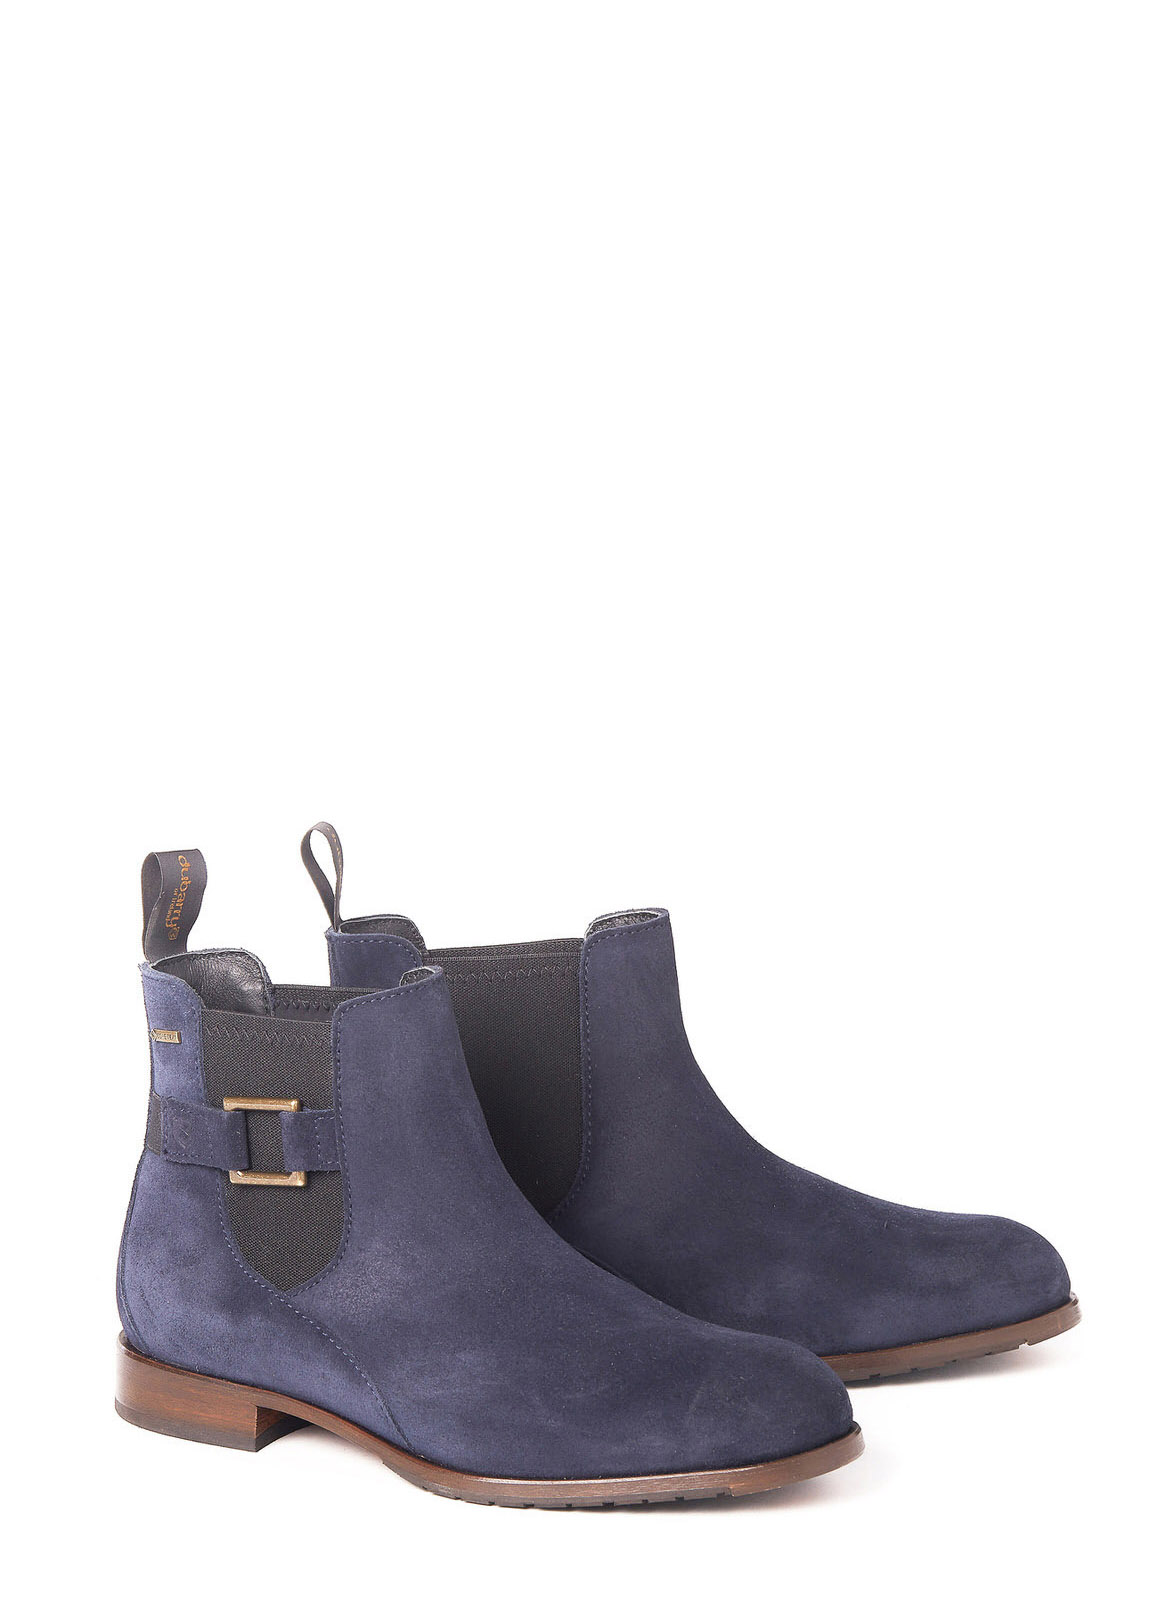 Monaghan_Leather_Soled_Boot_French_Navy_Image_1